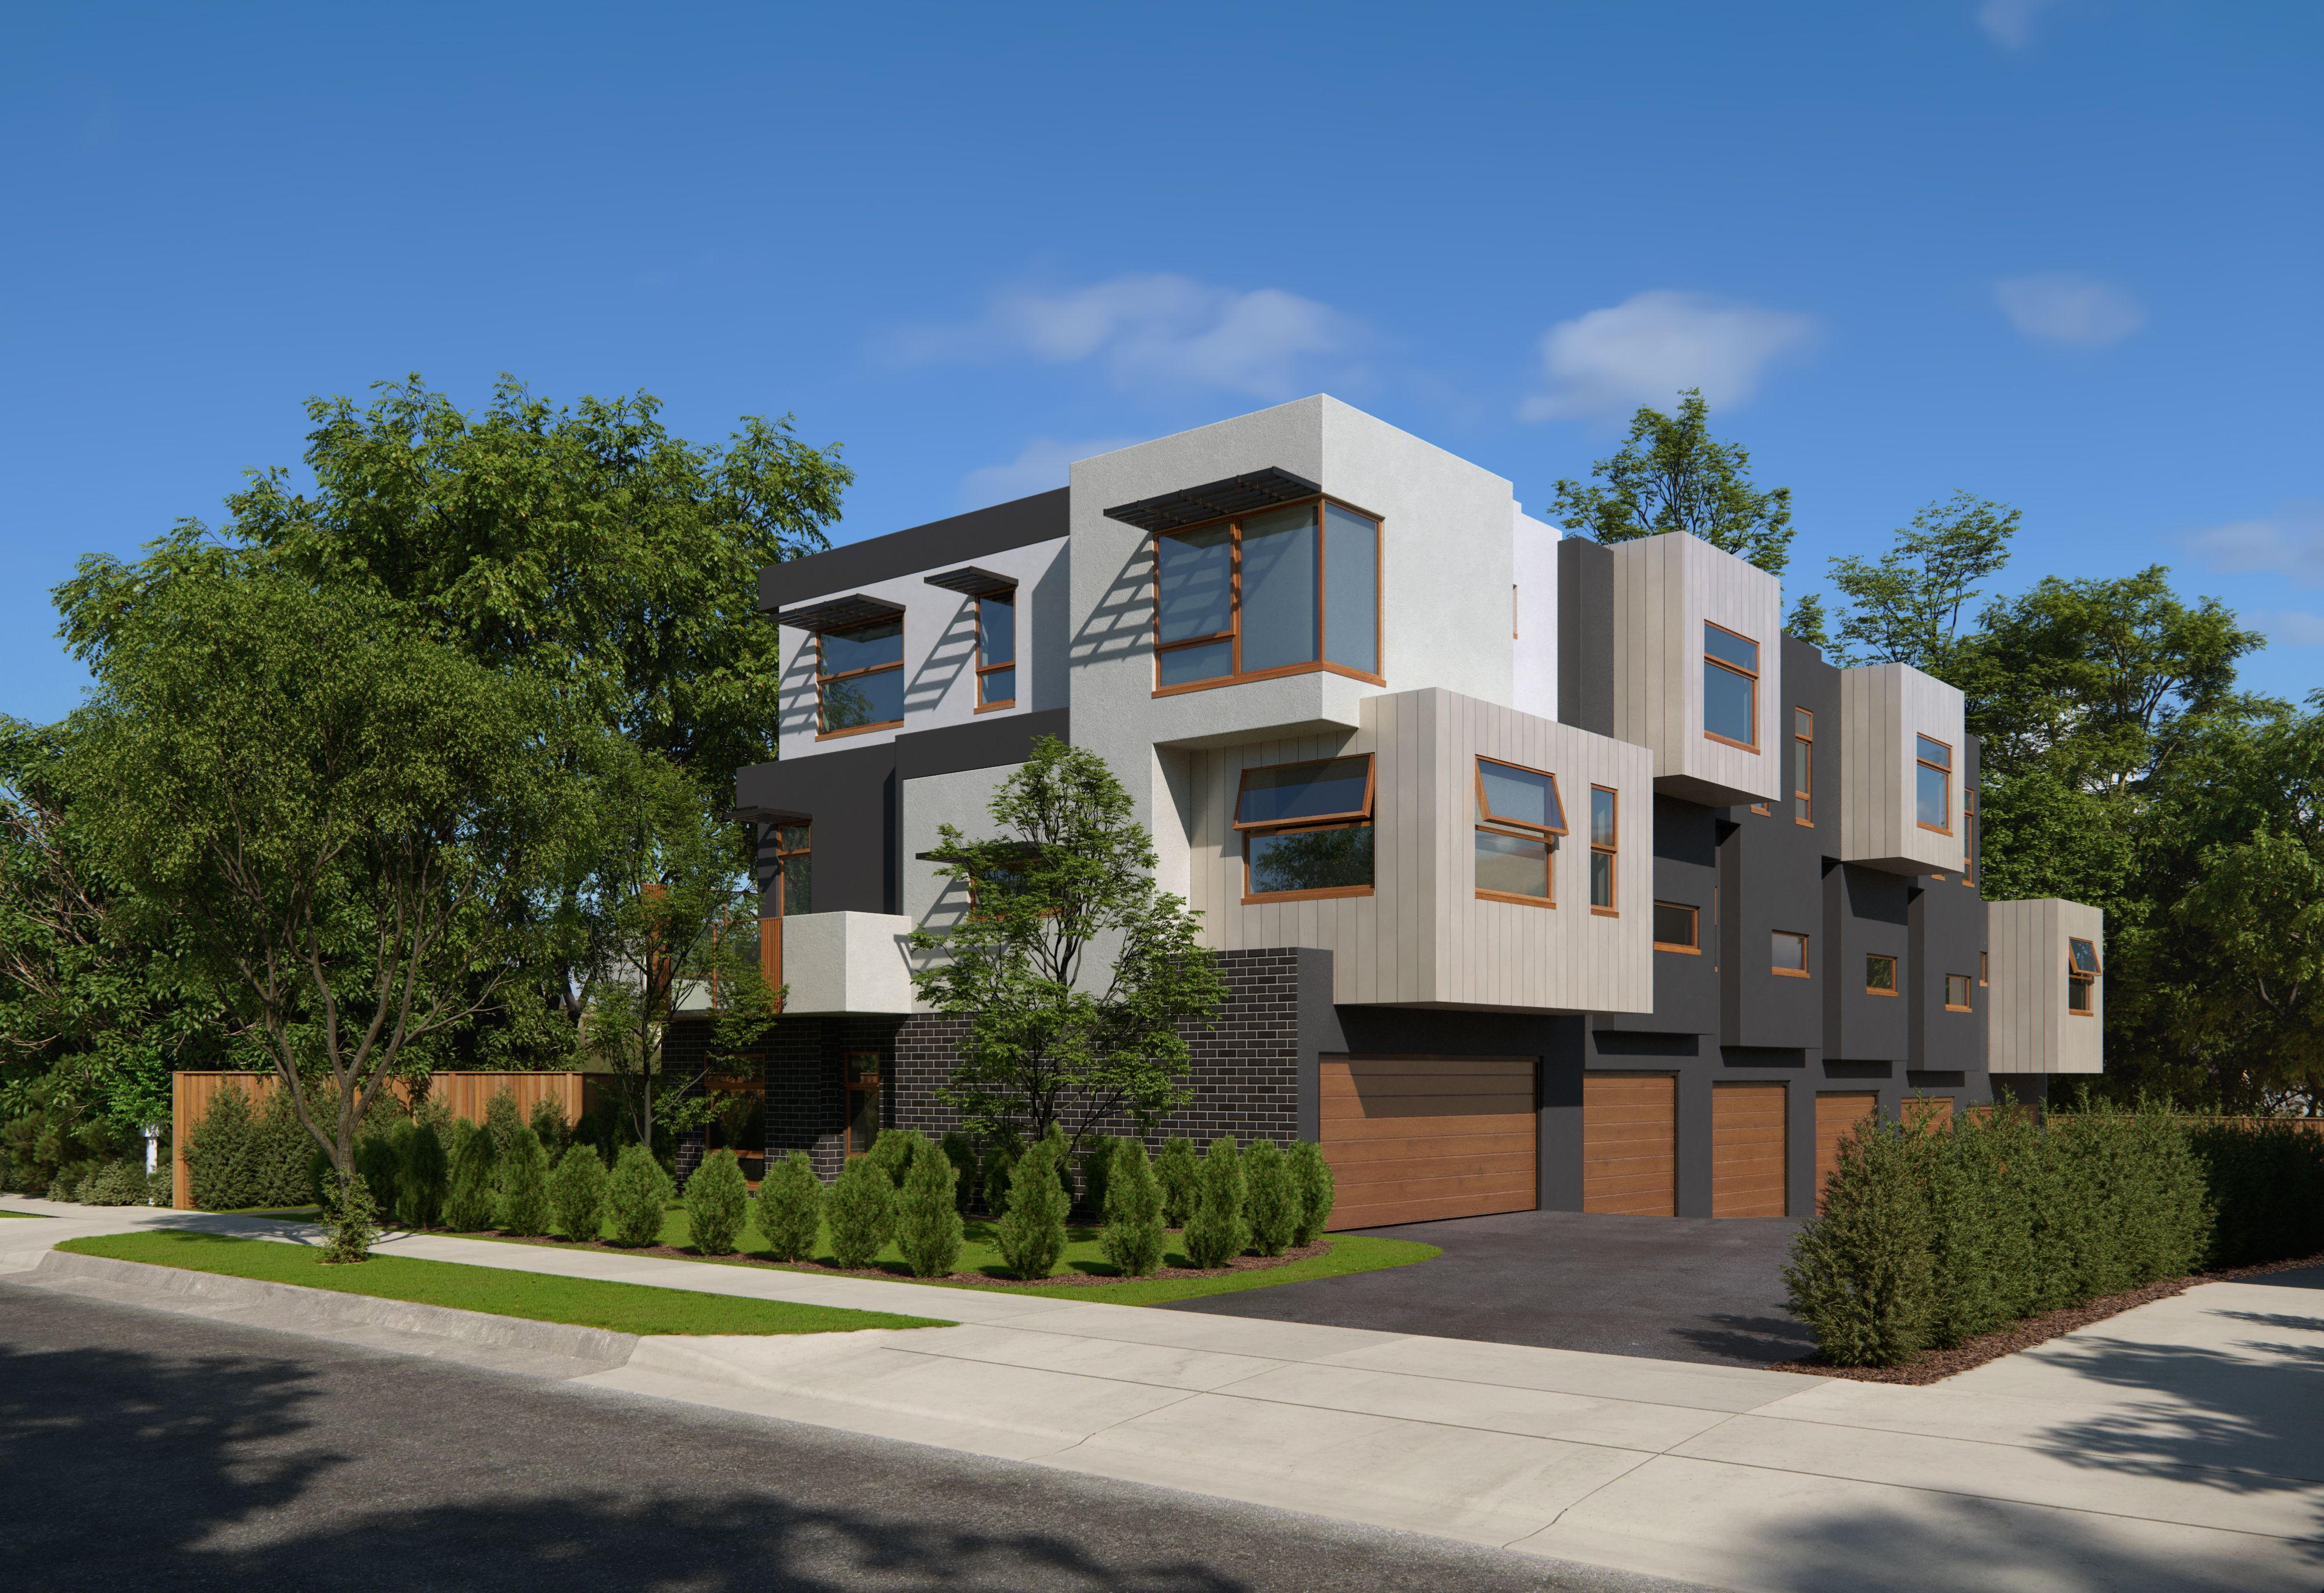 OFF THE PLAN DESIGNER QUALITY TOWNHOUSES-SUPERB OPTIONS TO CHOOSE FROM